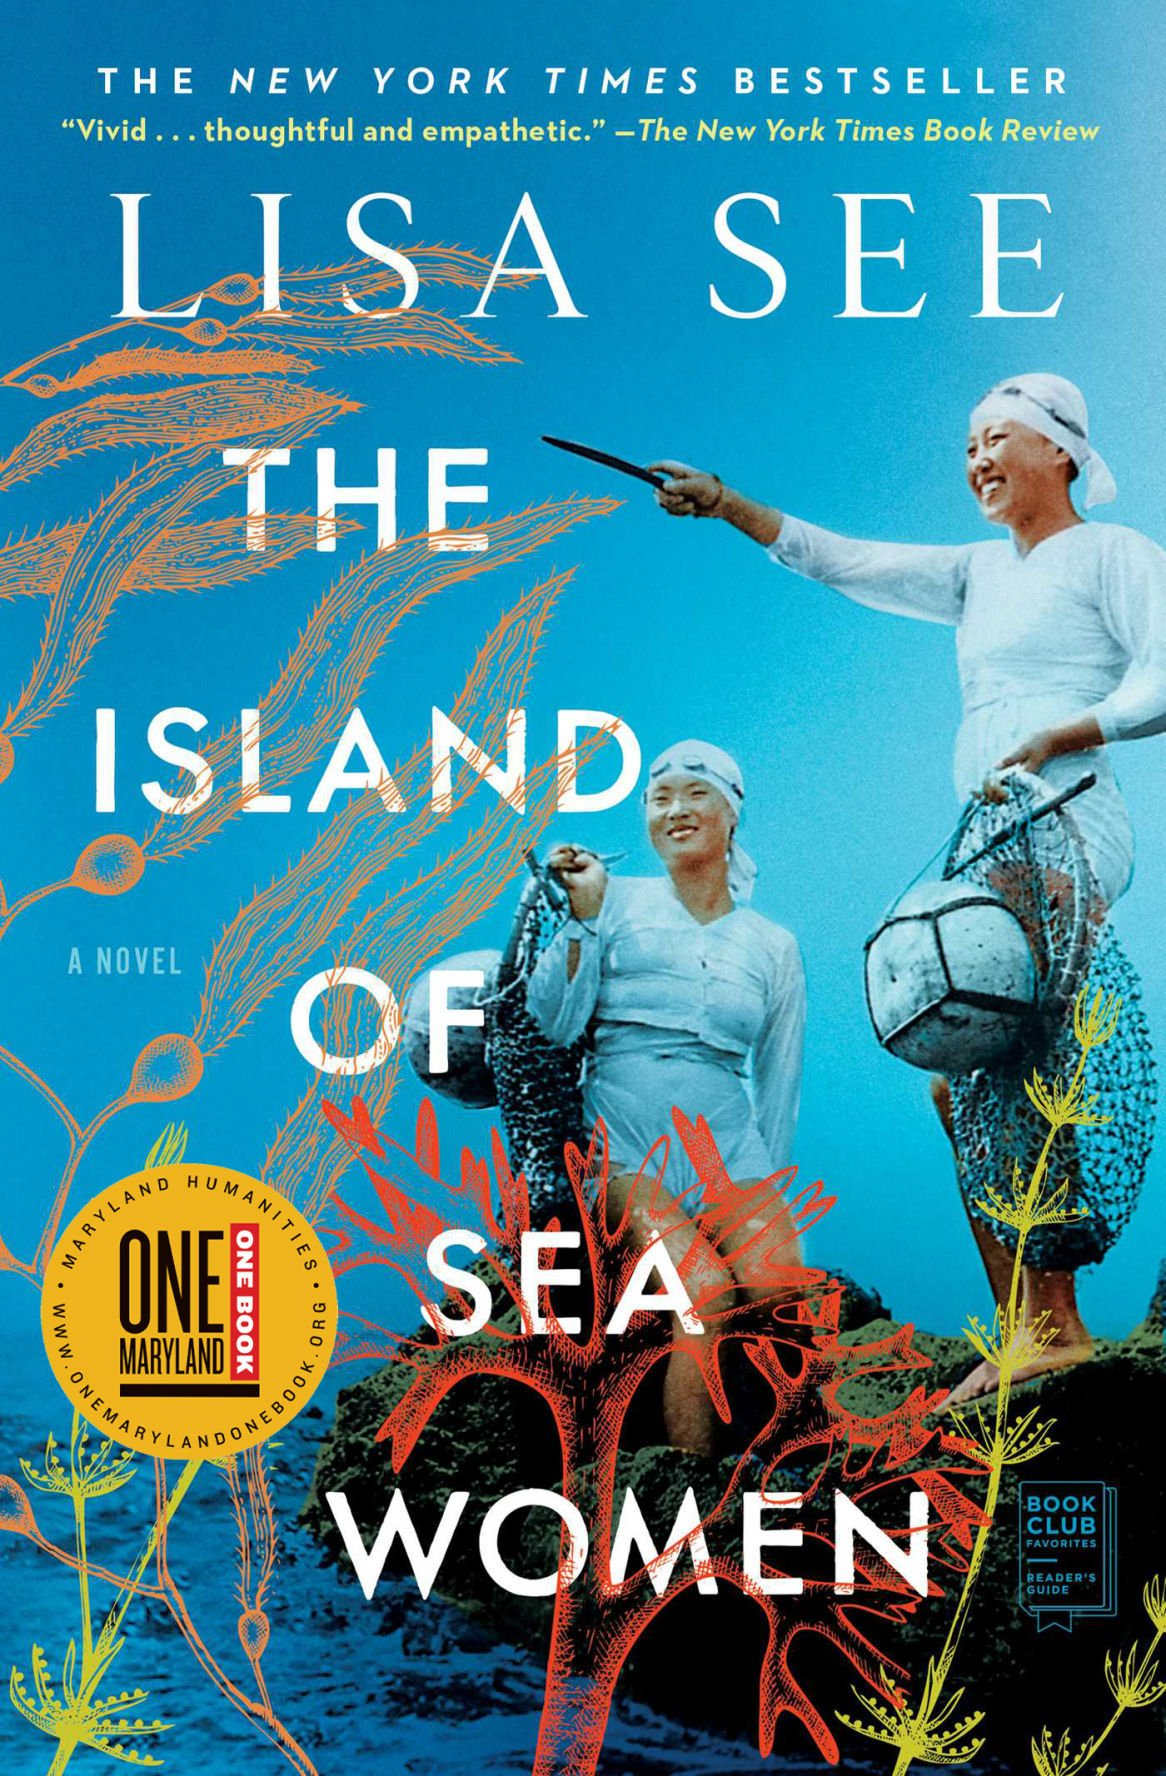 """One Maryland One Book selects """"The Island of Sea Women"""""""